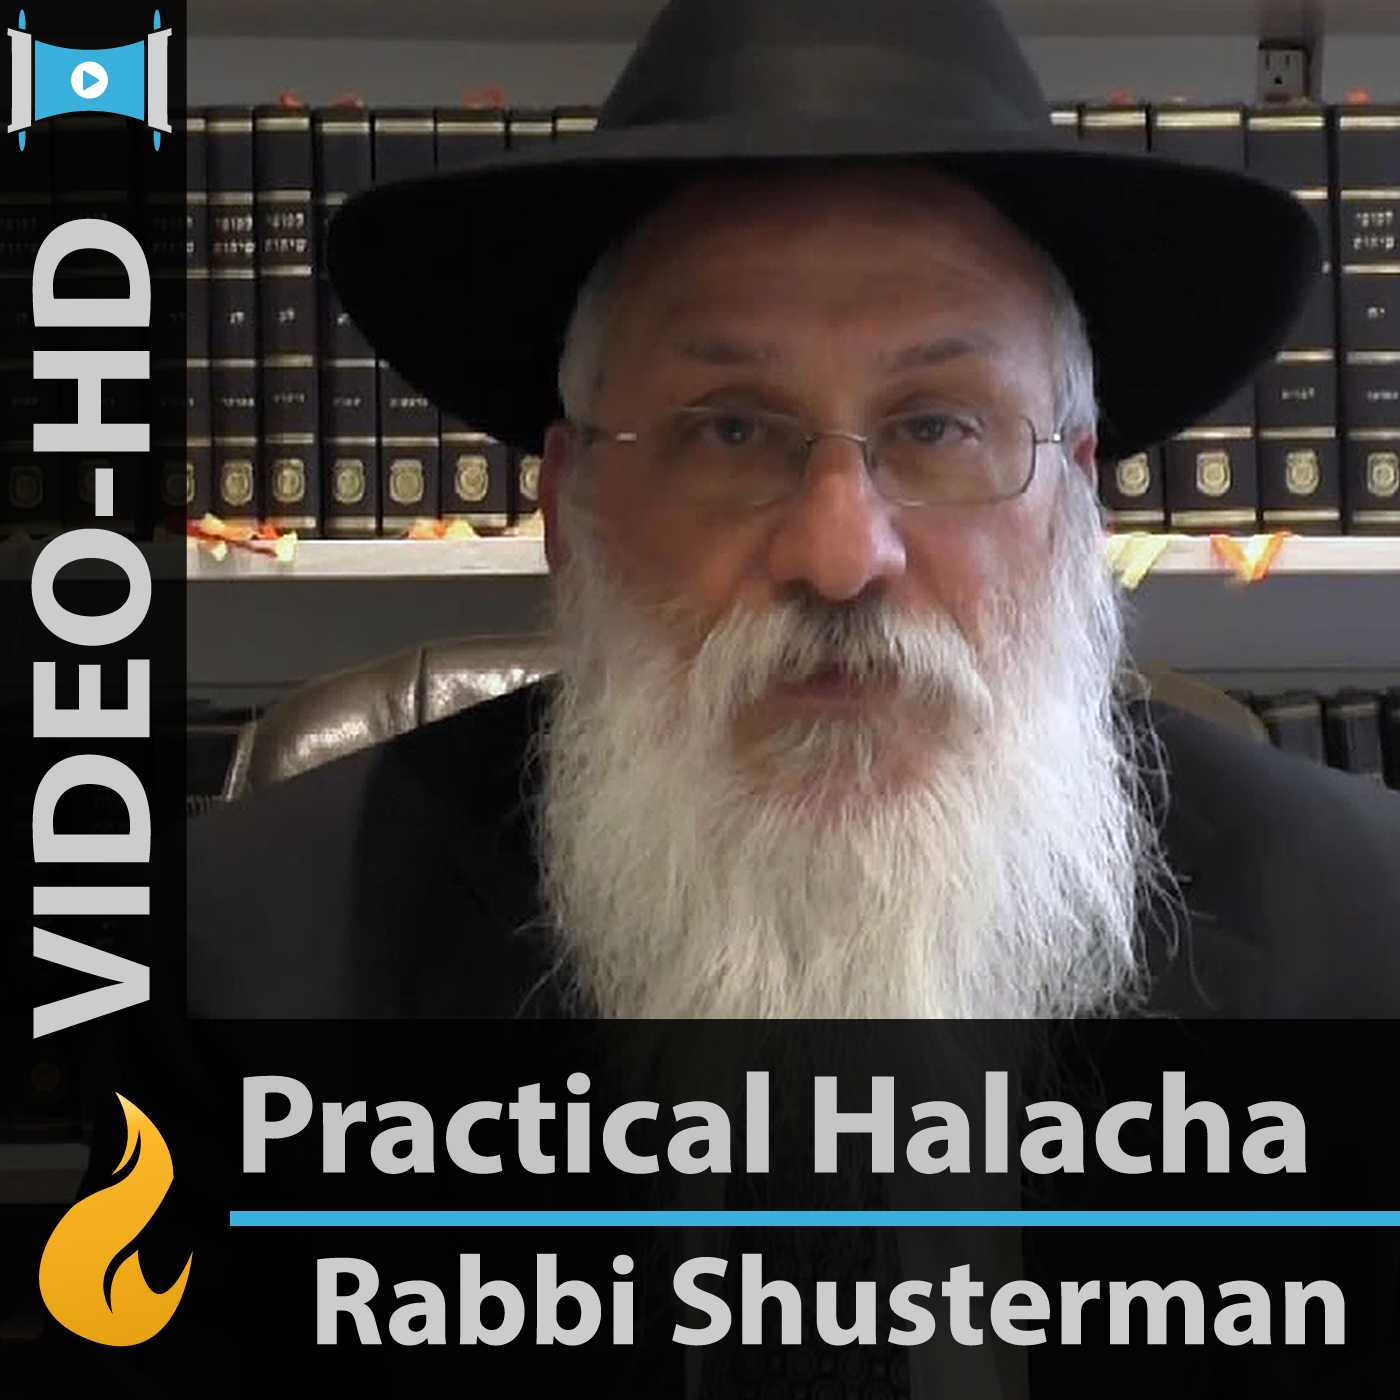 Practical Halachah with Rabbi Shusterman (Video-HD)